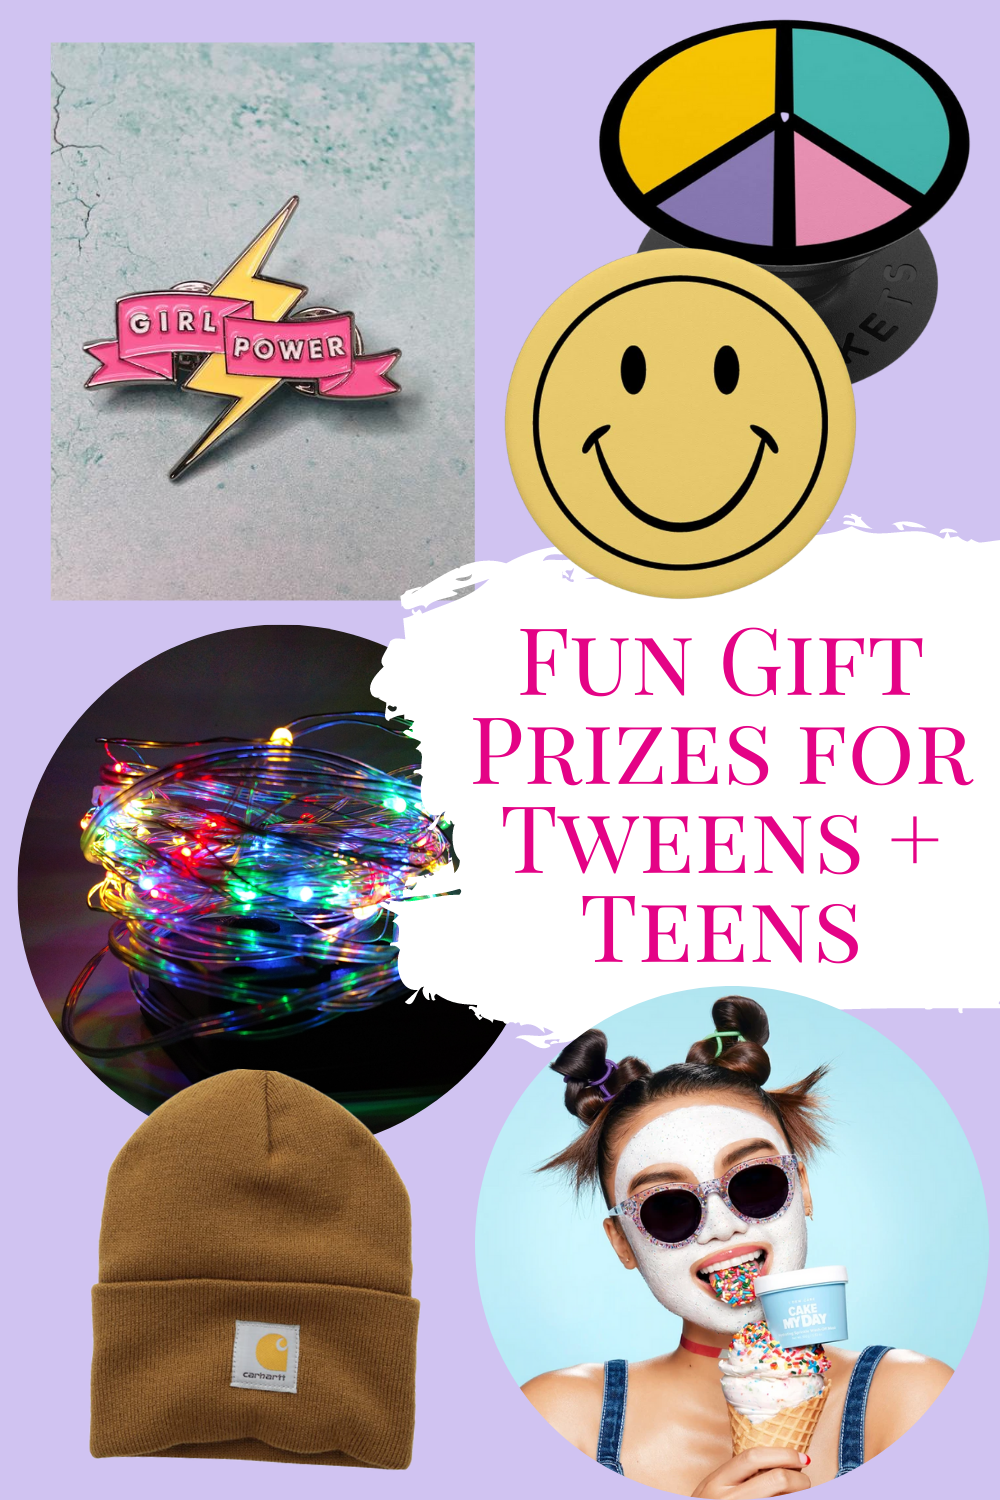 Party Prizes for Games for Teens